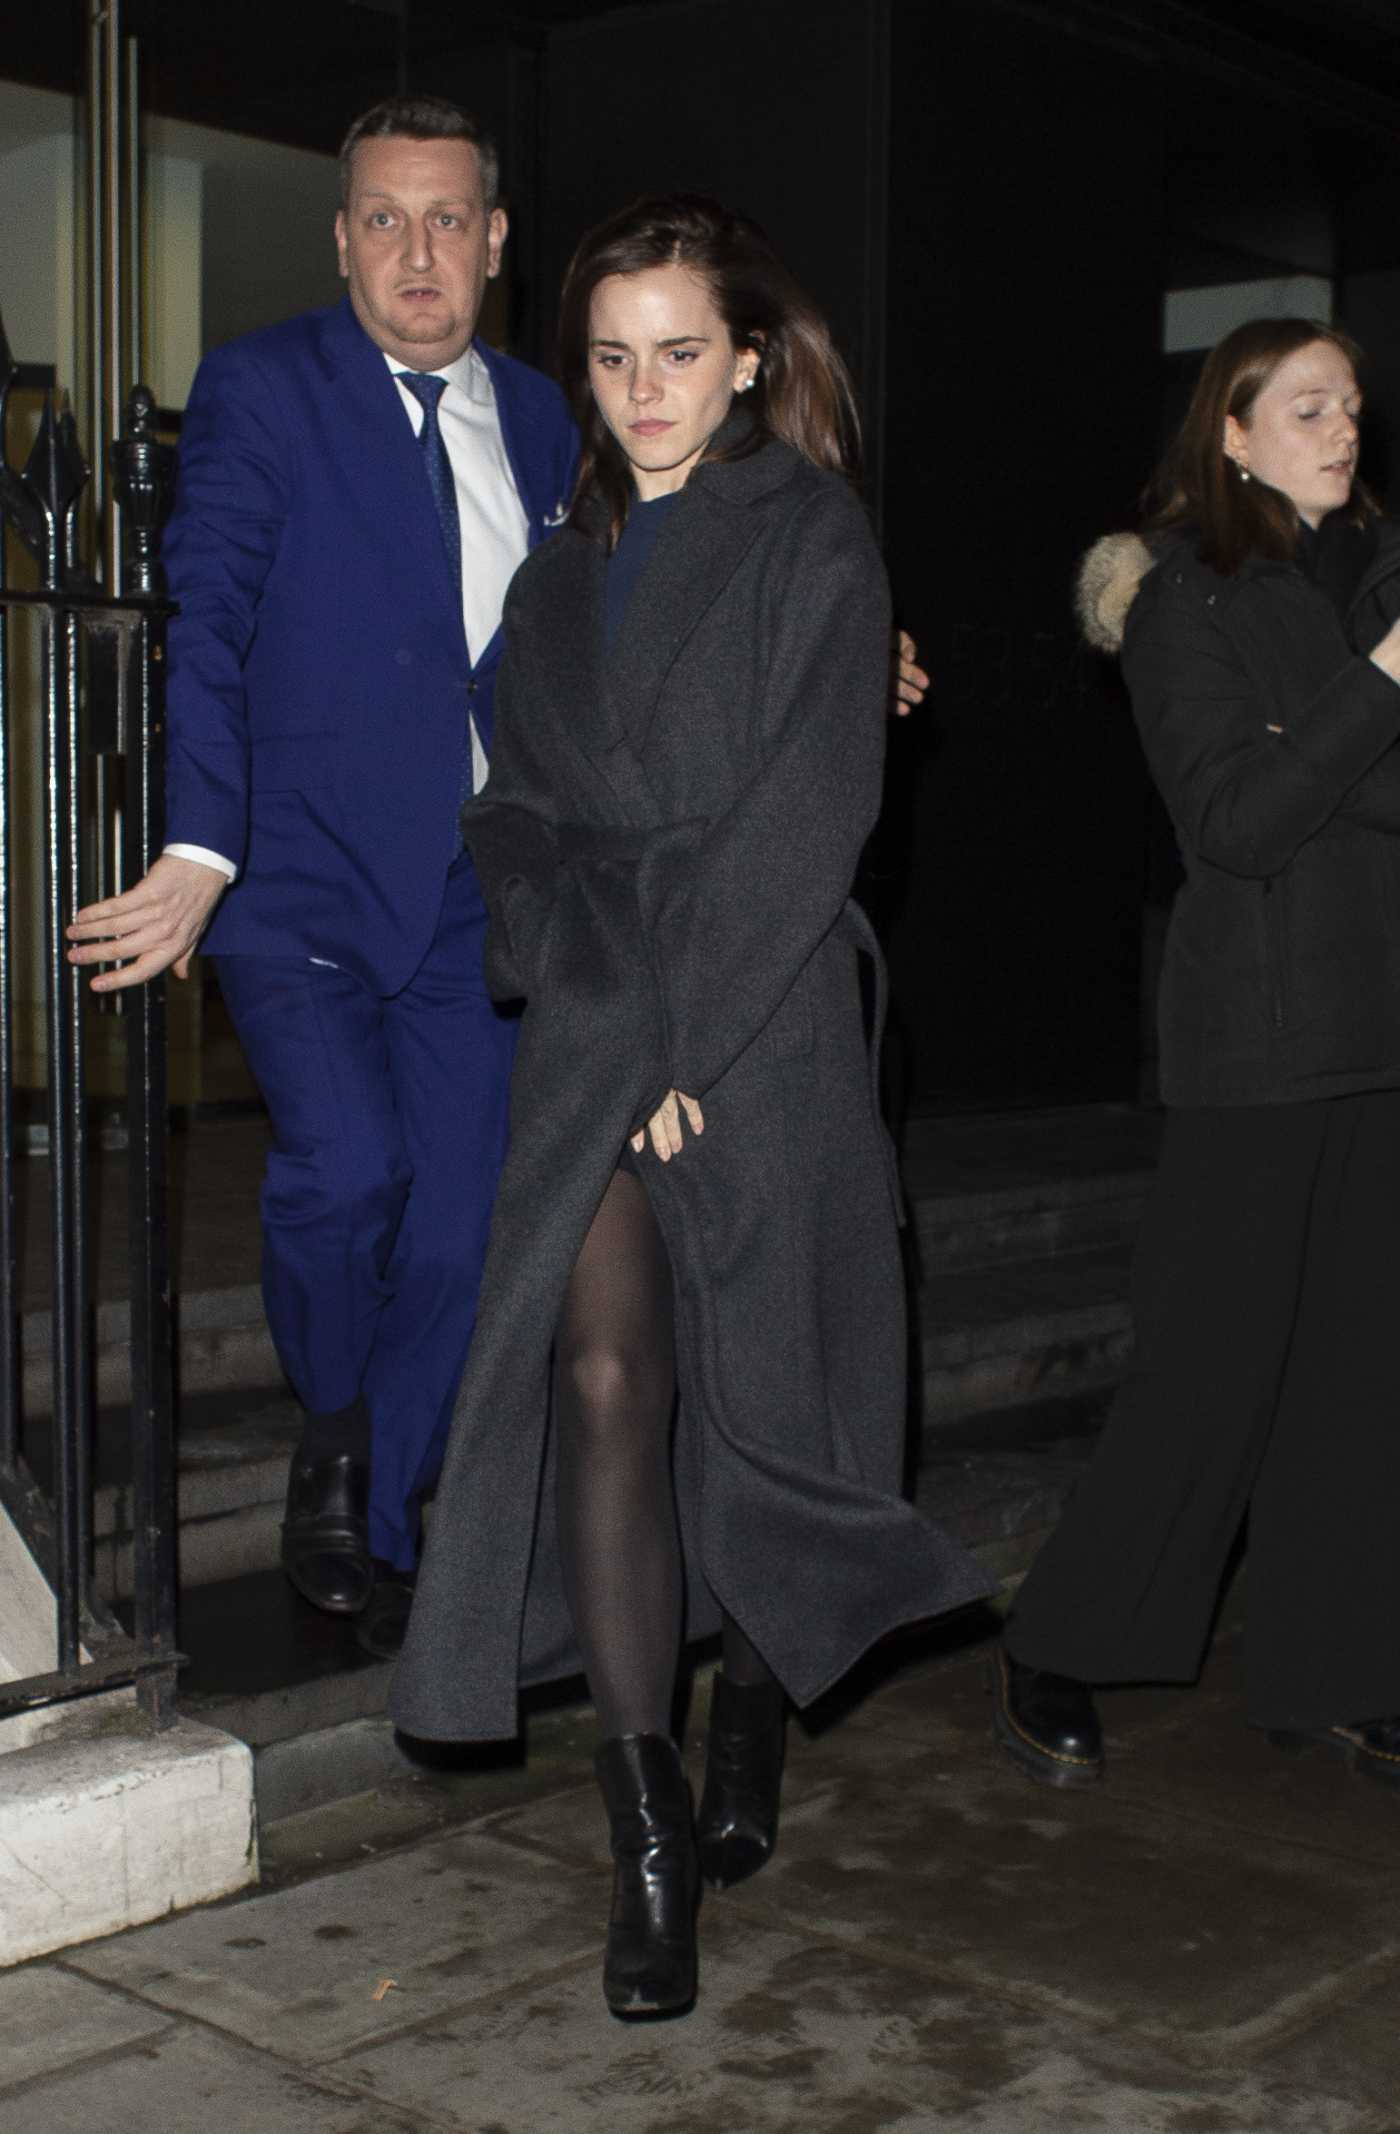 Emma Watson in a Black Coat Leaves C Restaurant in London 01/30/2020